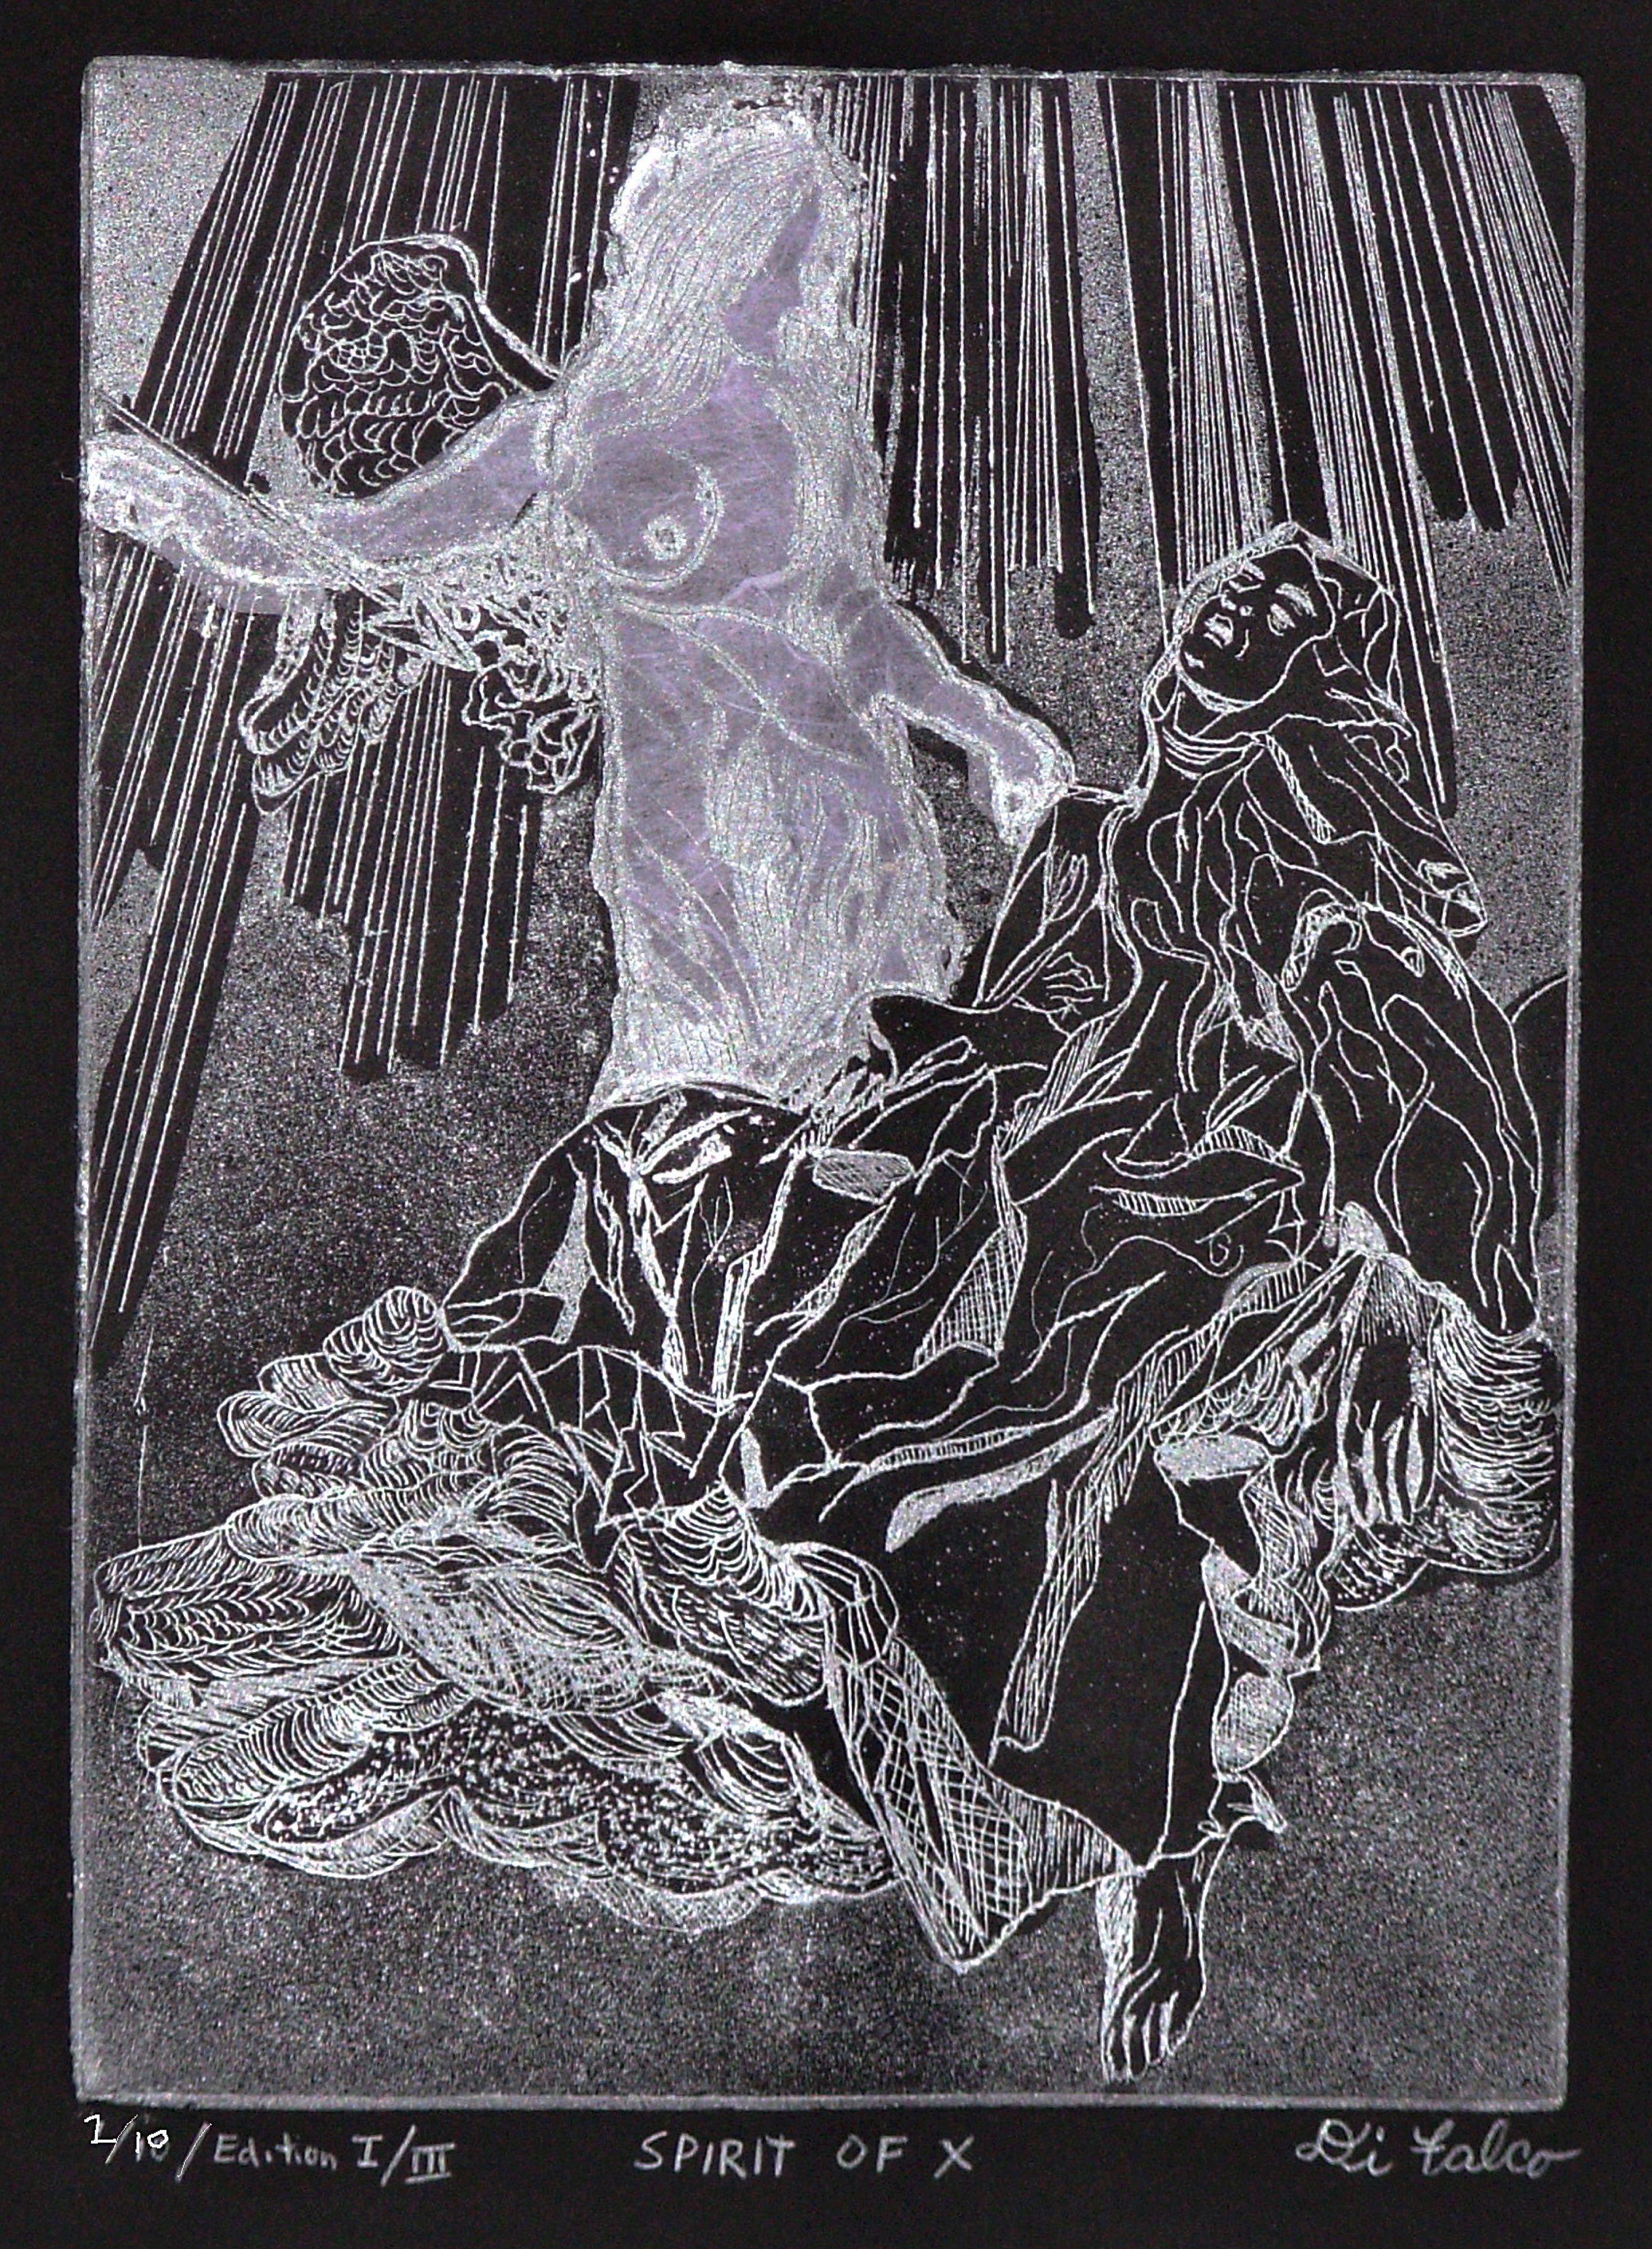 Jerry  Di Falco: 'SPIRIT OF X', 2012 Etching, Mystical.  Note The edition number, one of ten, sold  on Nov 30, 2014. The edition number pictured here is TWO of TEN. Techniques include intaglio, aquatint,  chine colle. The image depicts the Bernini sculpture, The Ecstasy of Saint Teresa, in Rome at the Cornaro Chapel, Santa Maria della Vittoria. The letter...